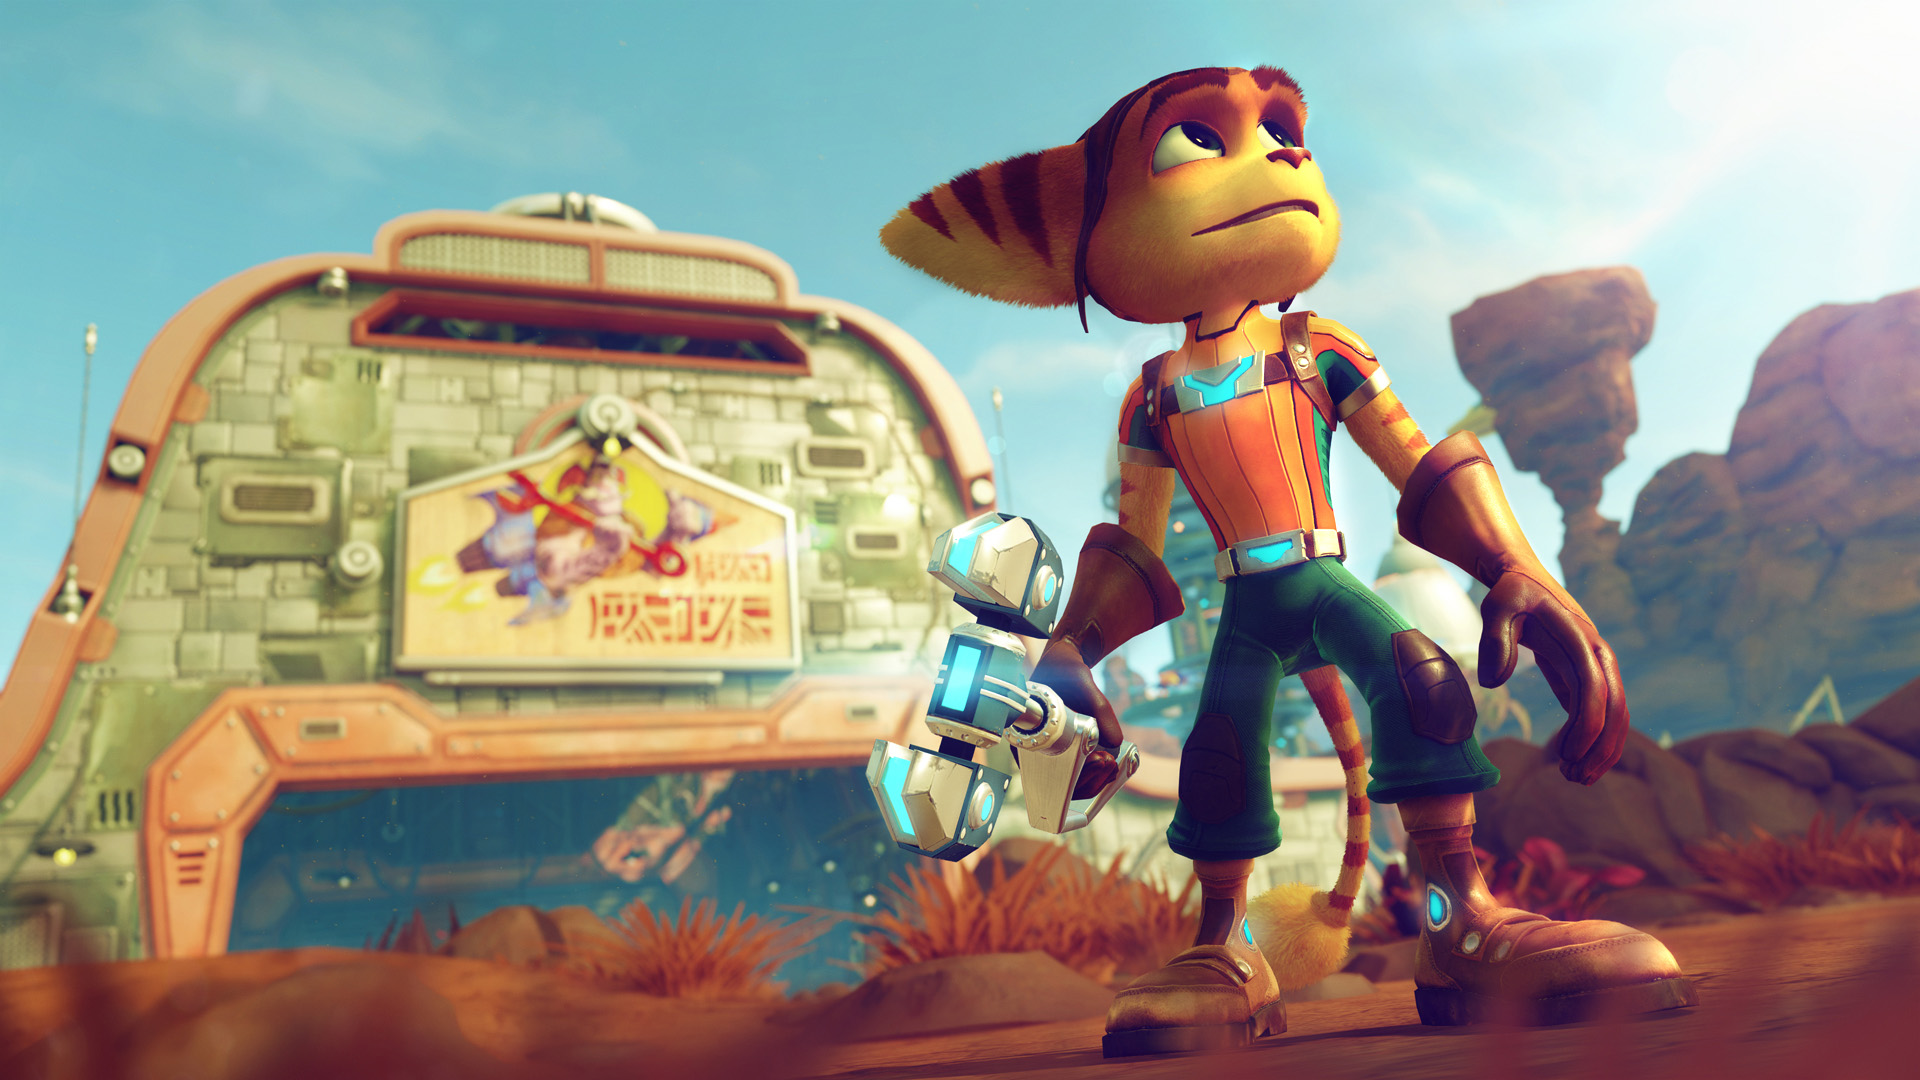 Ratchet and Clank on PlayStation 4 is 'a new game,' not just a remake